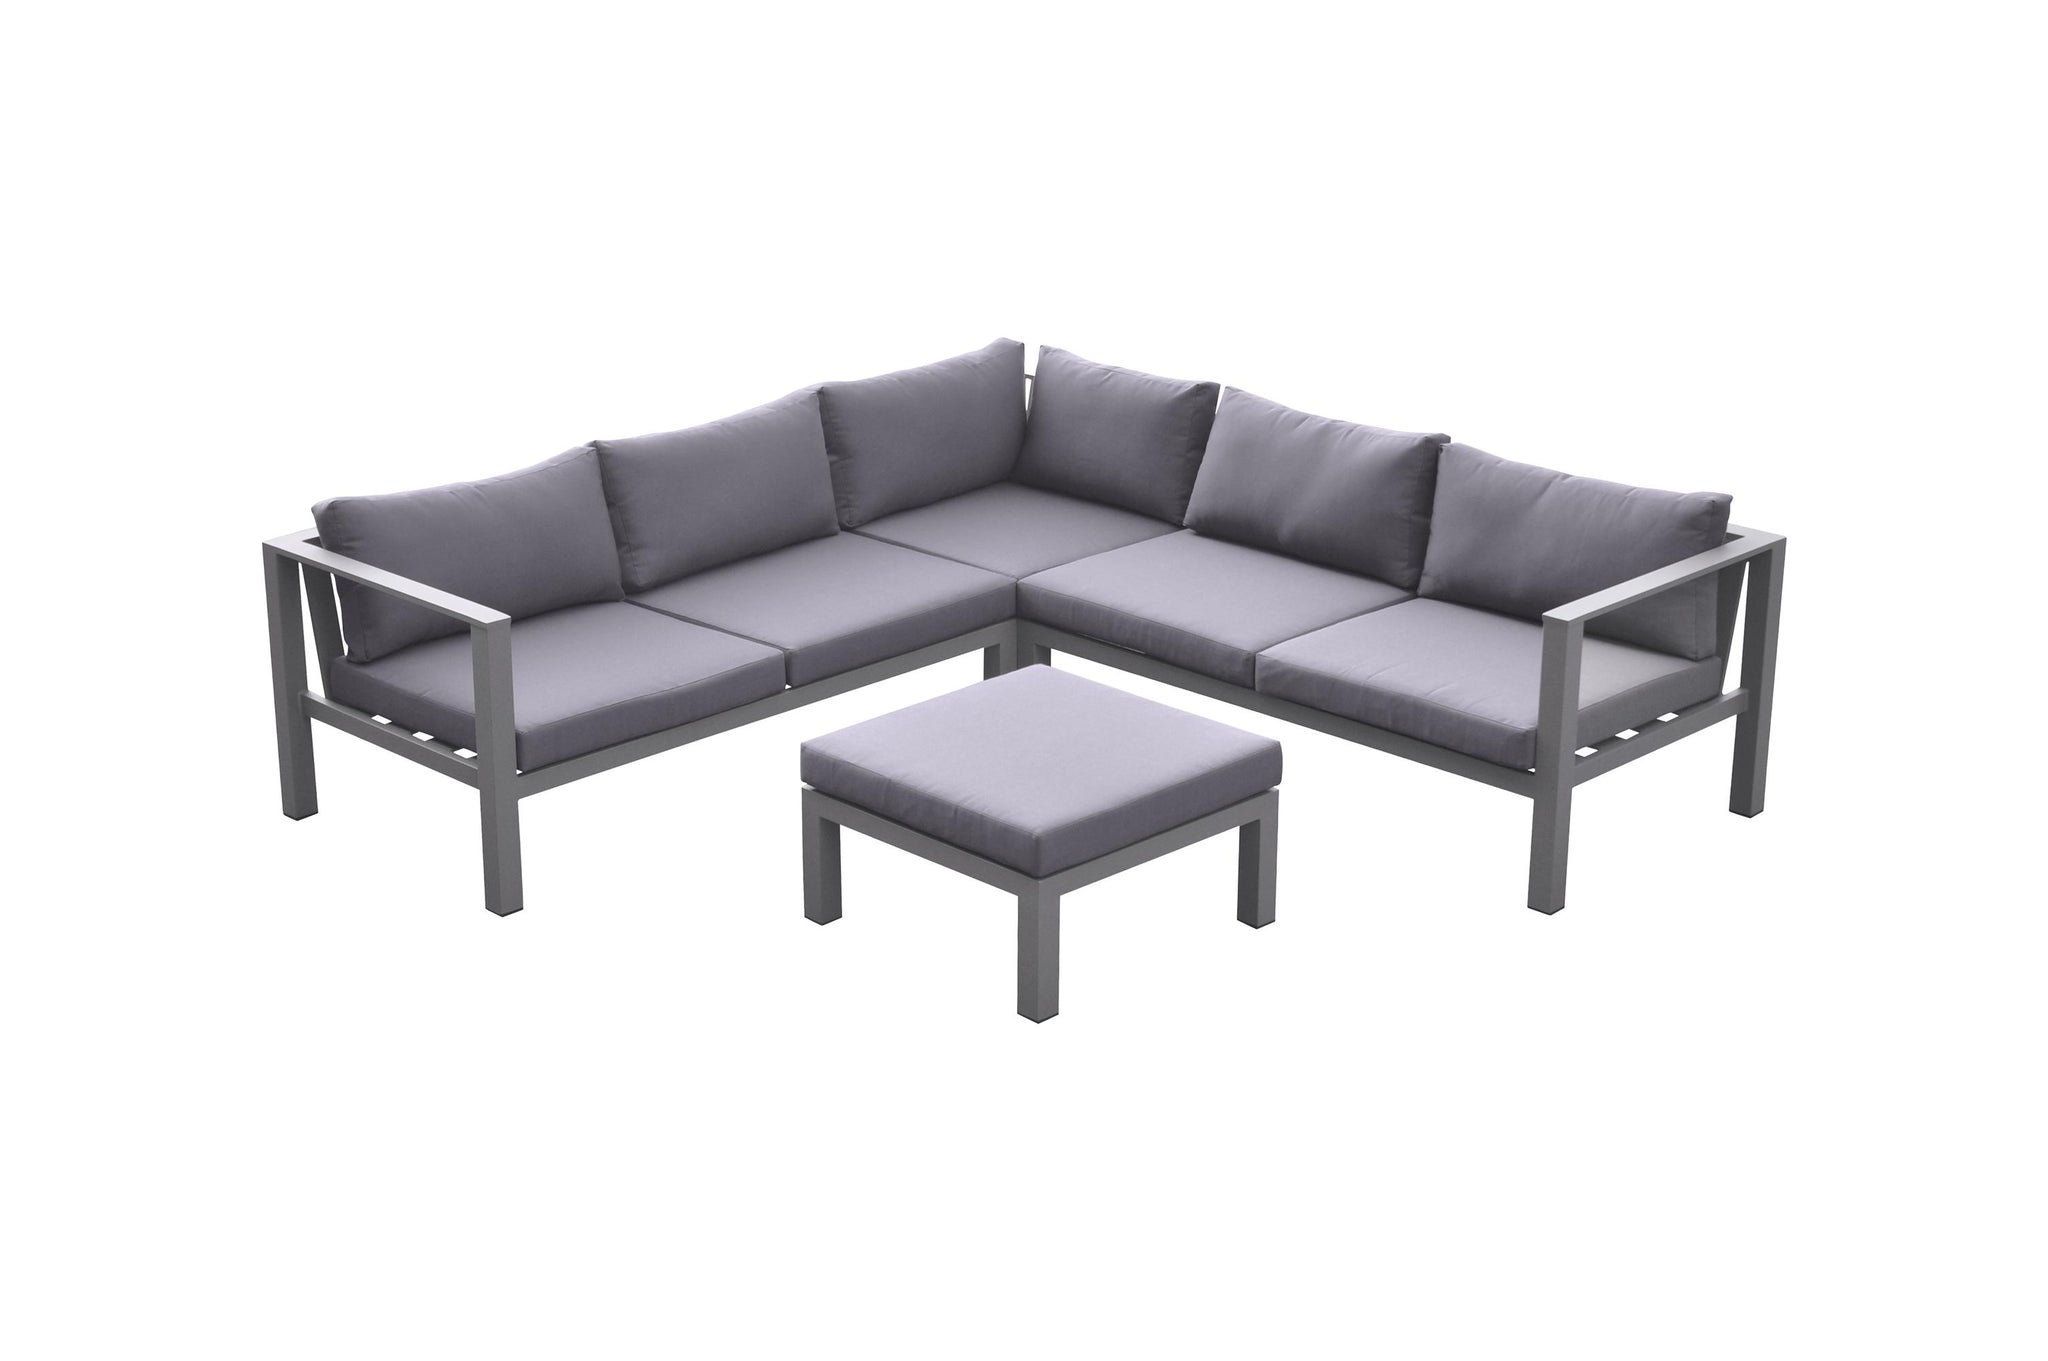 Armen Living Cliff Outdoor Patio Aluminum Sectional in Grey Powder Coated Finish with Grey Fabric Cushions